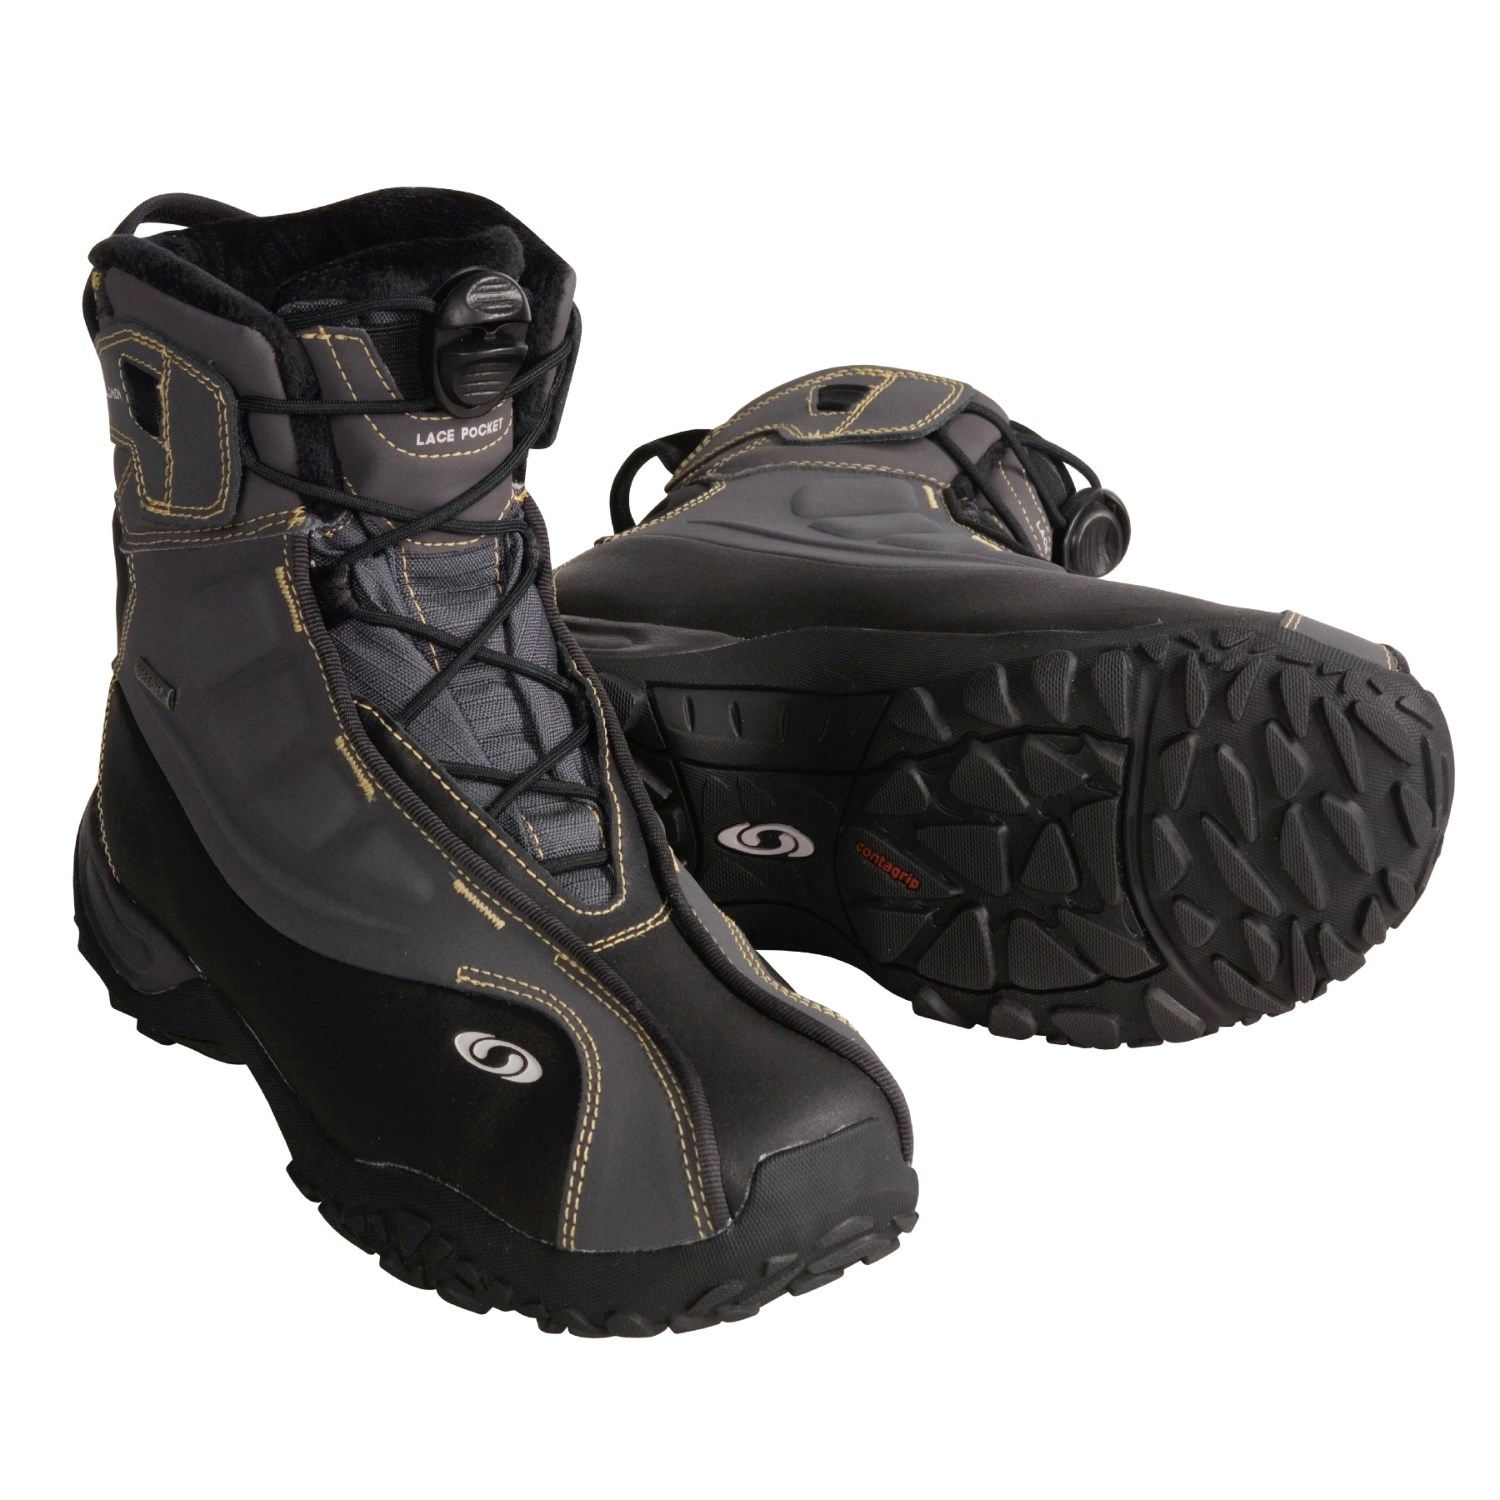 Original Asolo Glance GV Gore-Texu00ae Walking Boots - Waterproof (For Women) - Save 40%